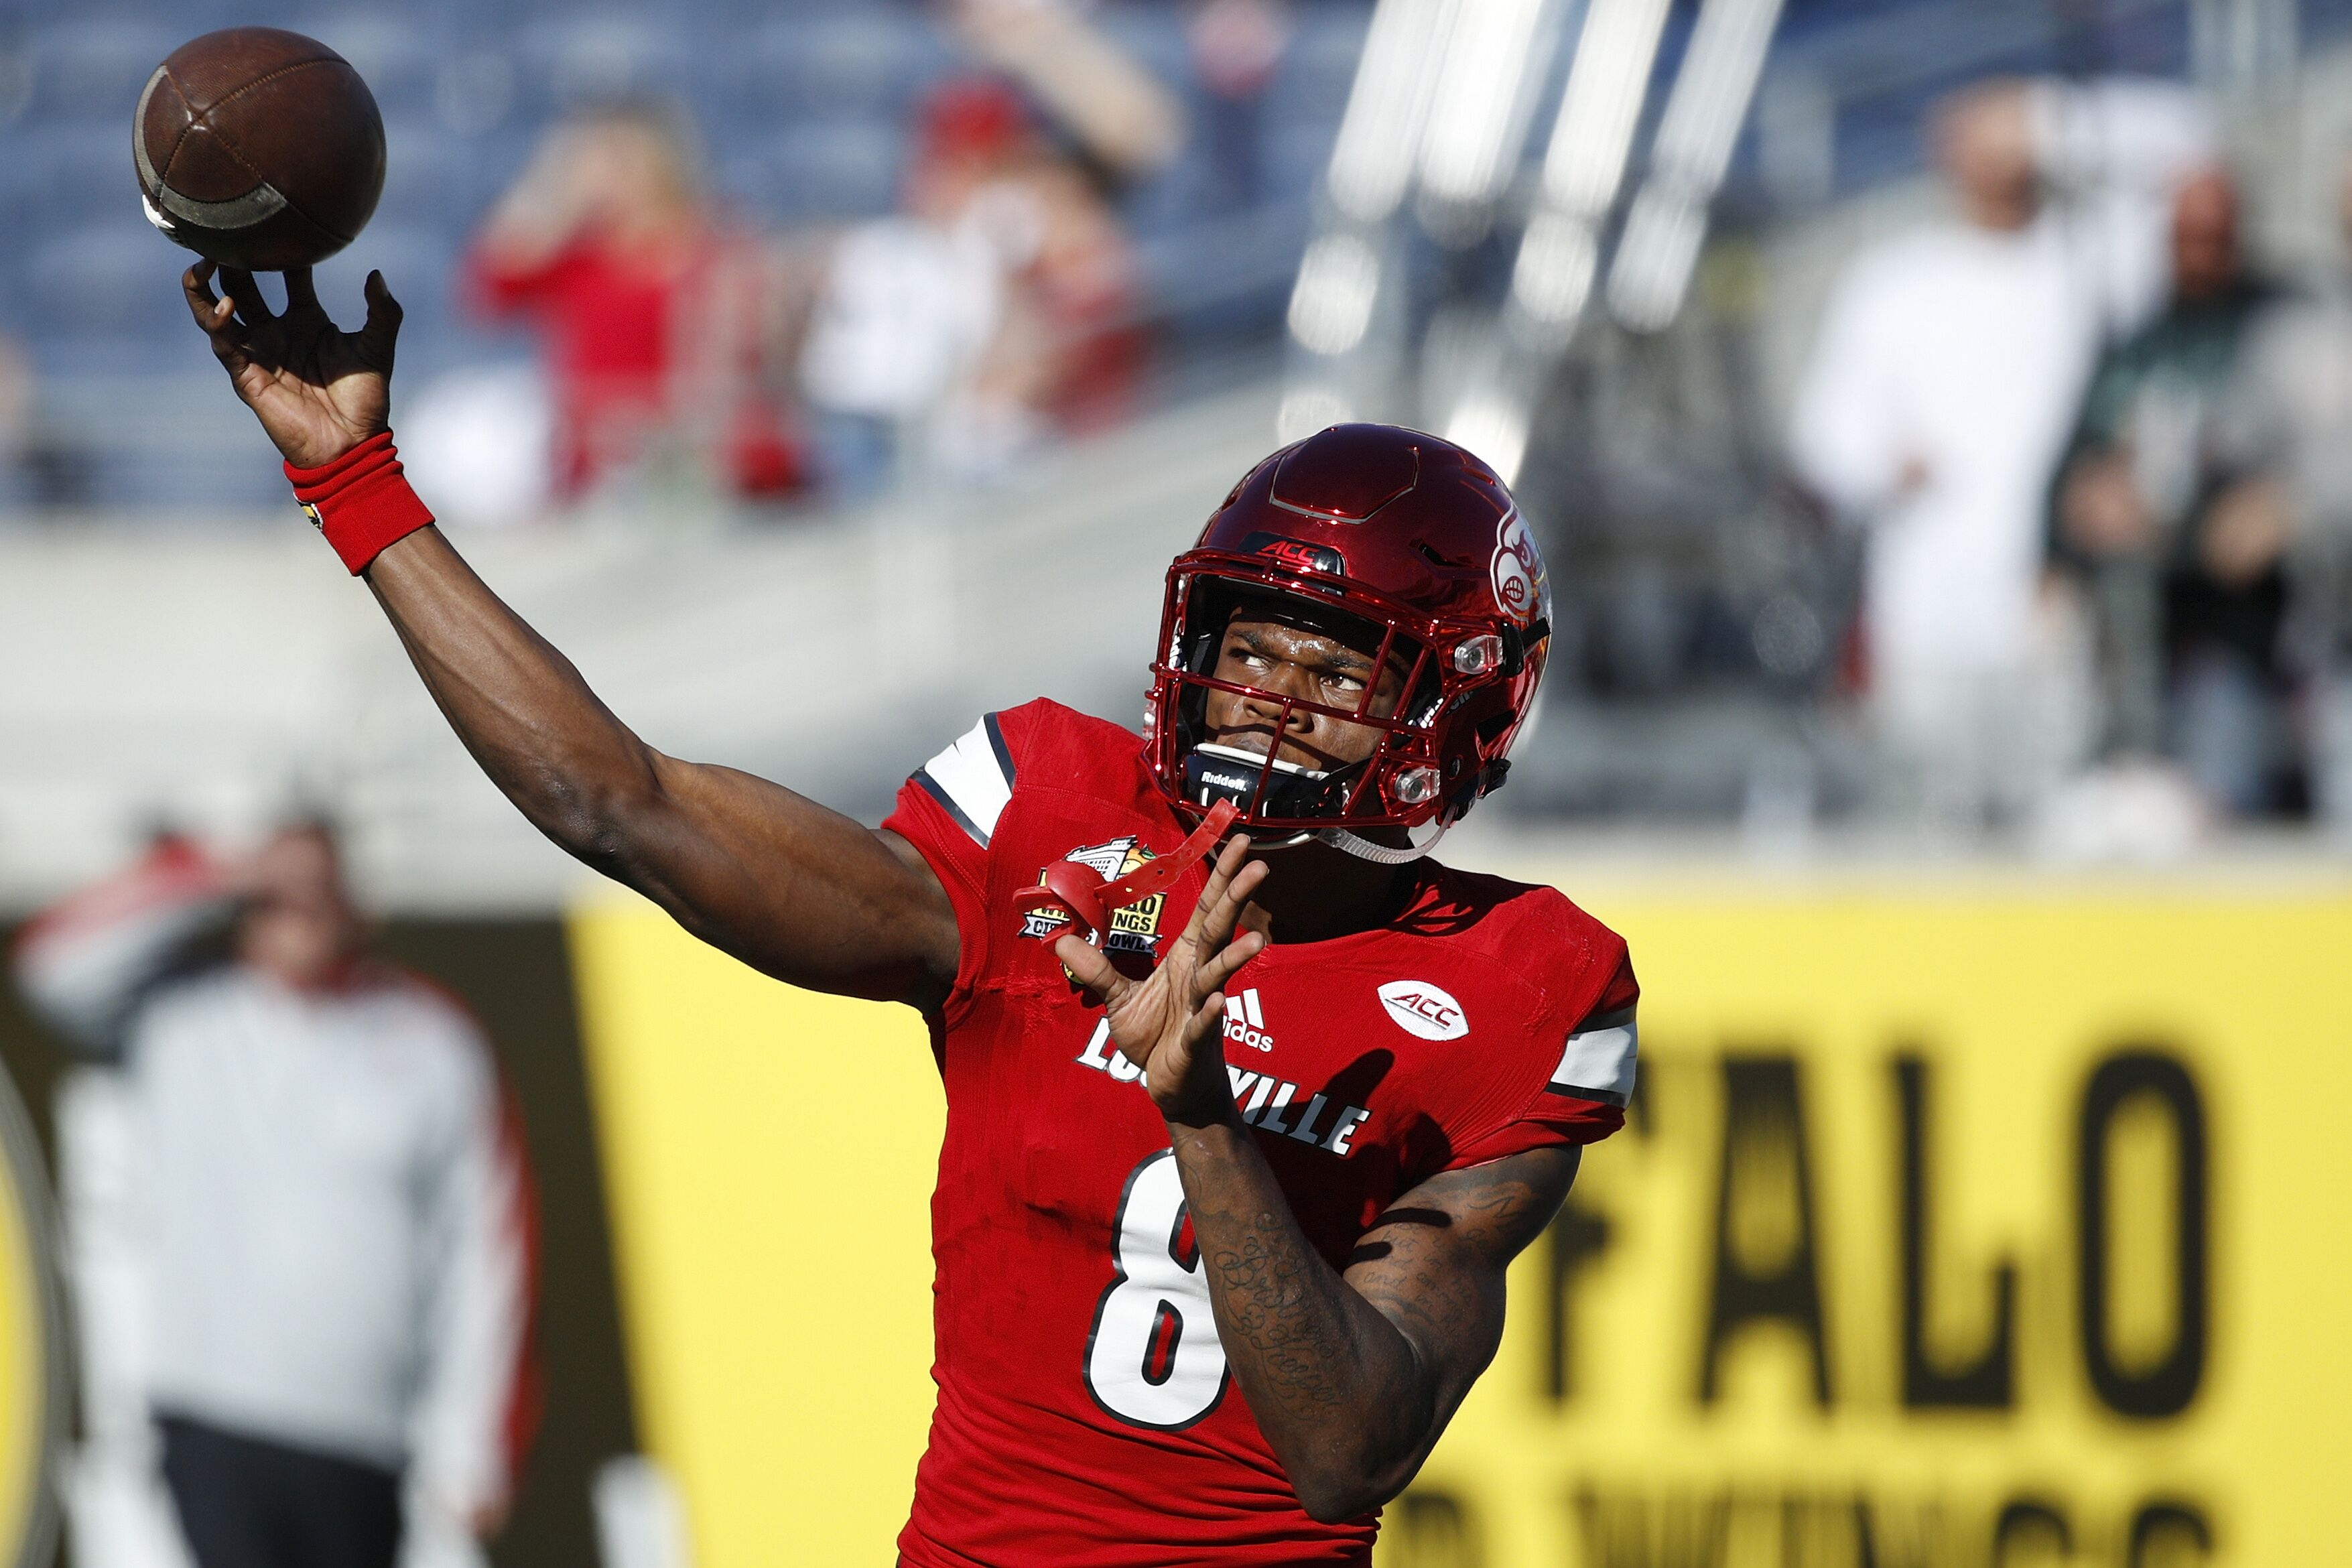 739209f43619 2018 NFL Draft: Mike Vick compares Lamar Jackson to himself